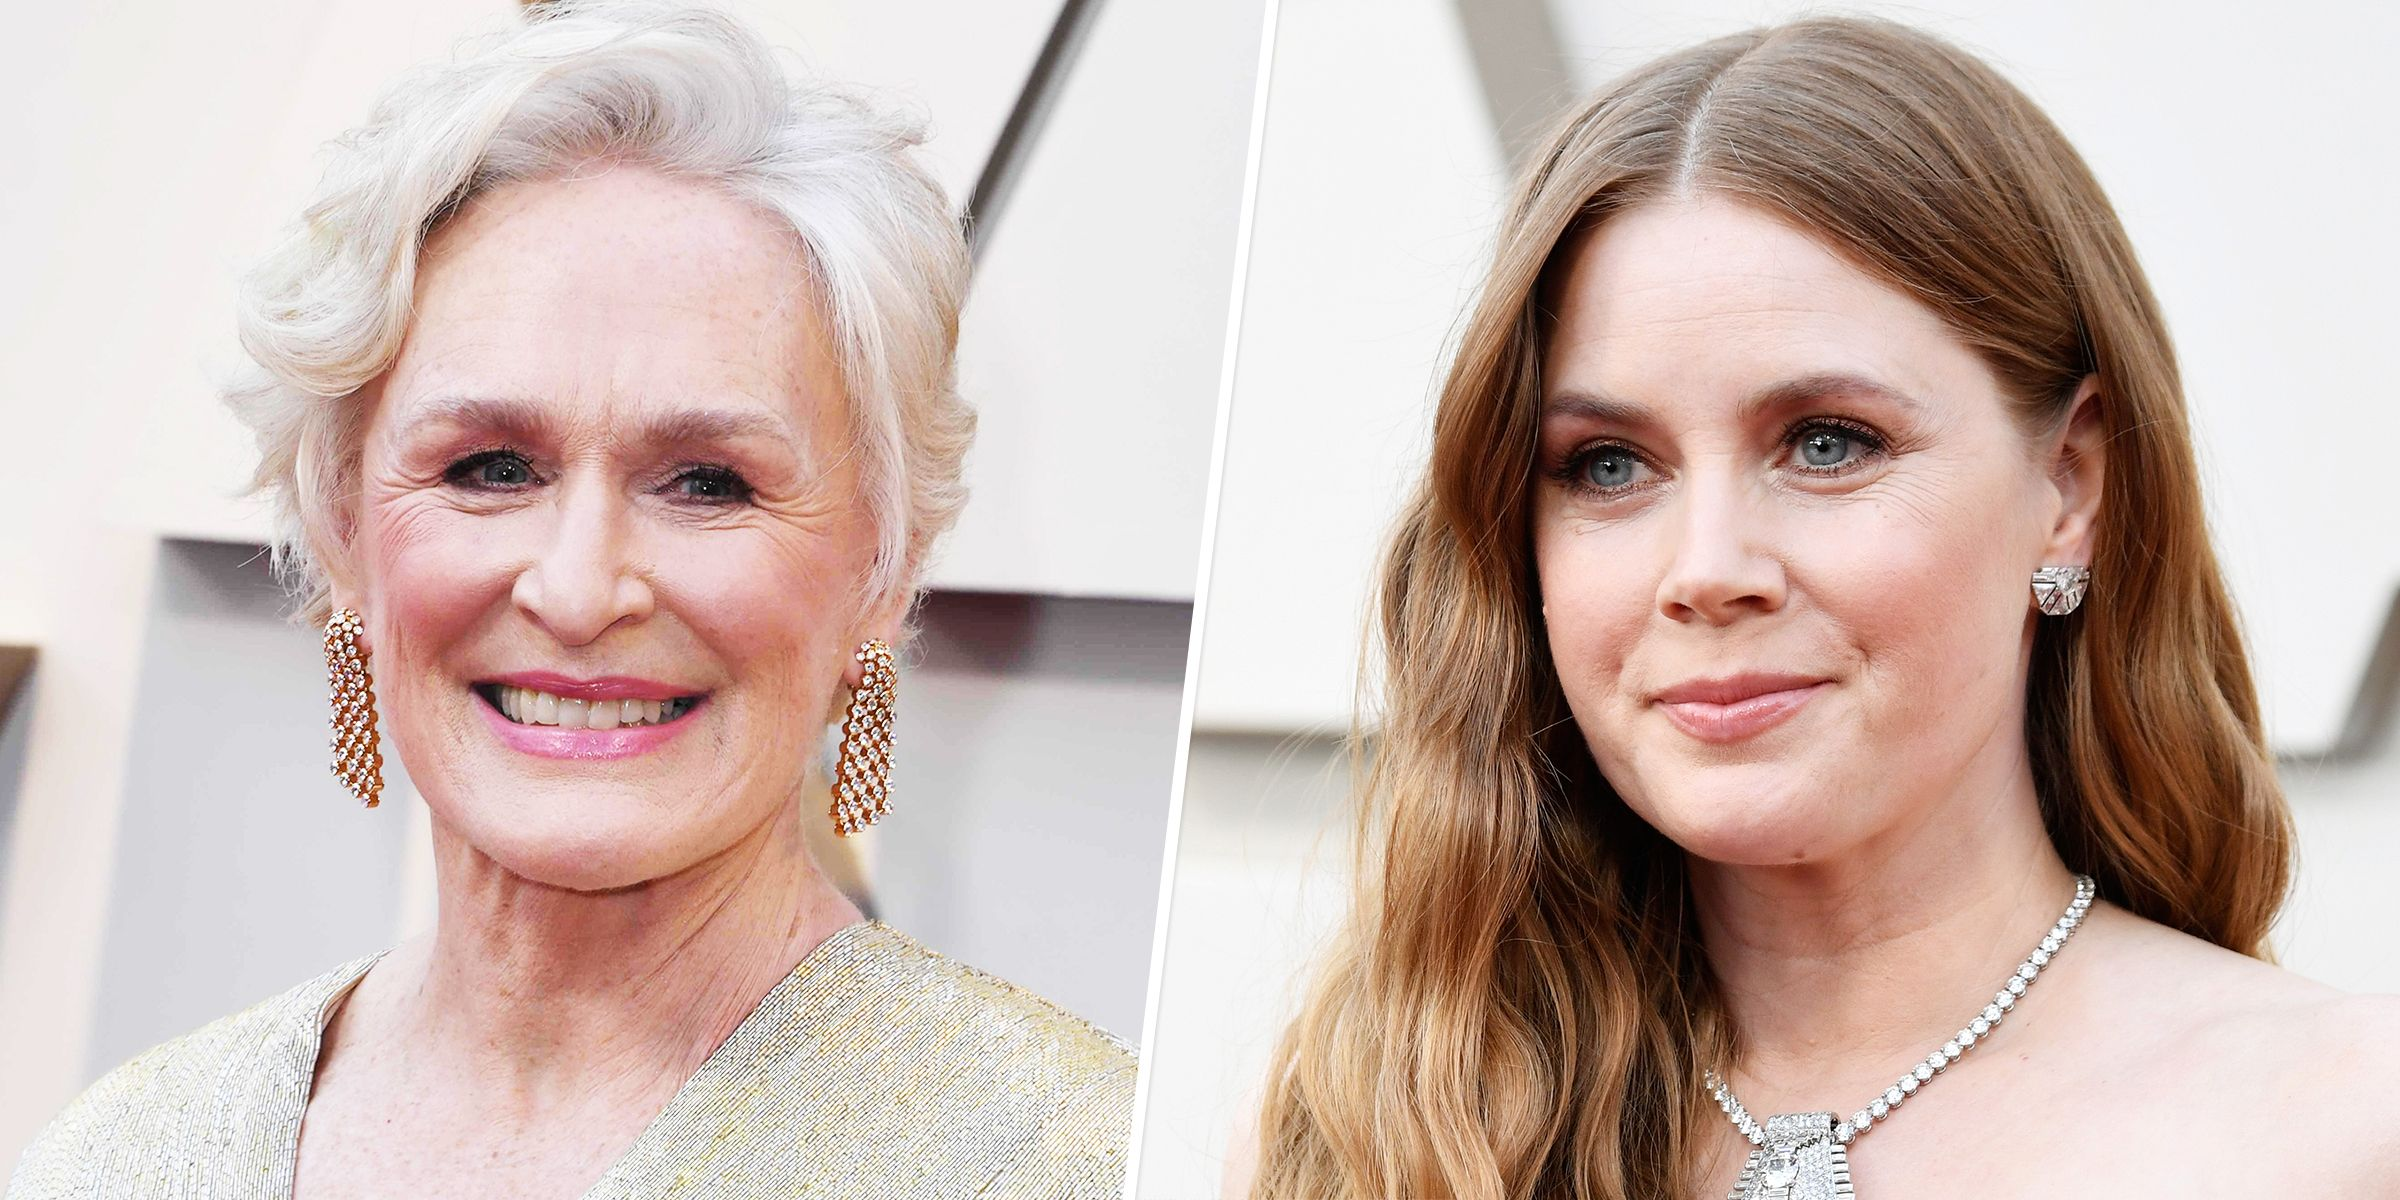 Glenn Close Amy Adams Look Very Different In New Hillbilly Elegy Trailer In 2020 New Upcoming Movies Hillbilly Elegy Glenn Close